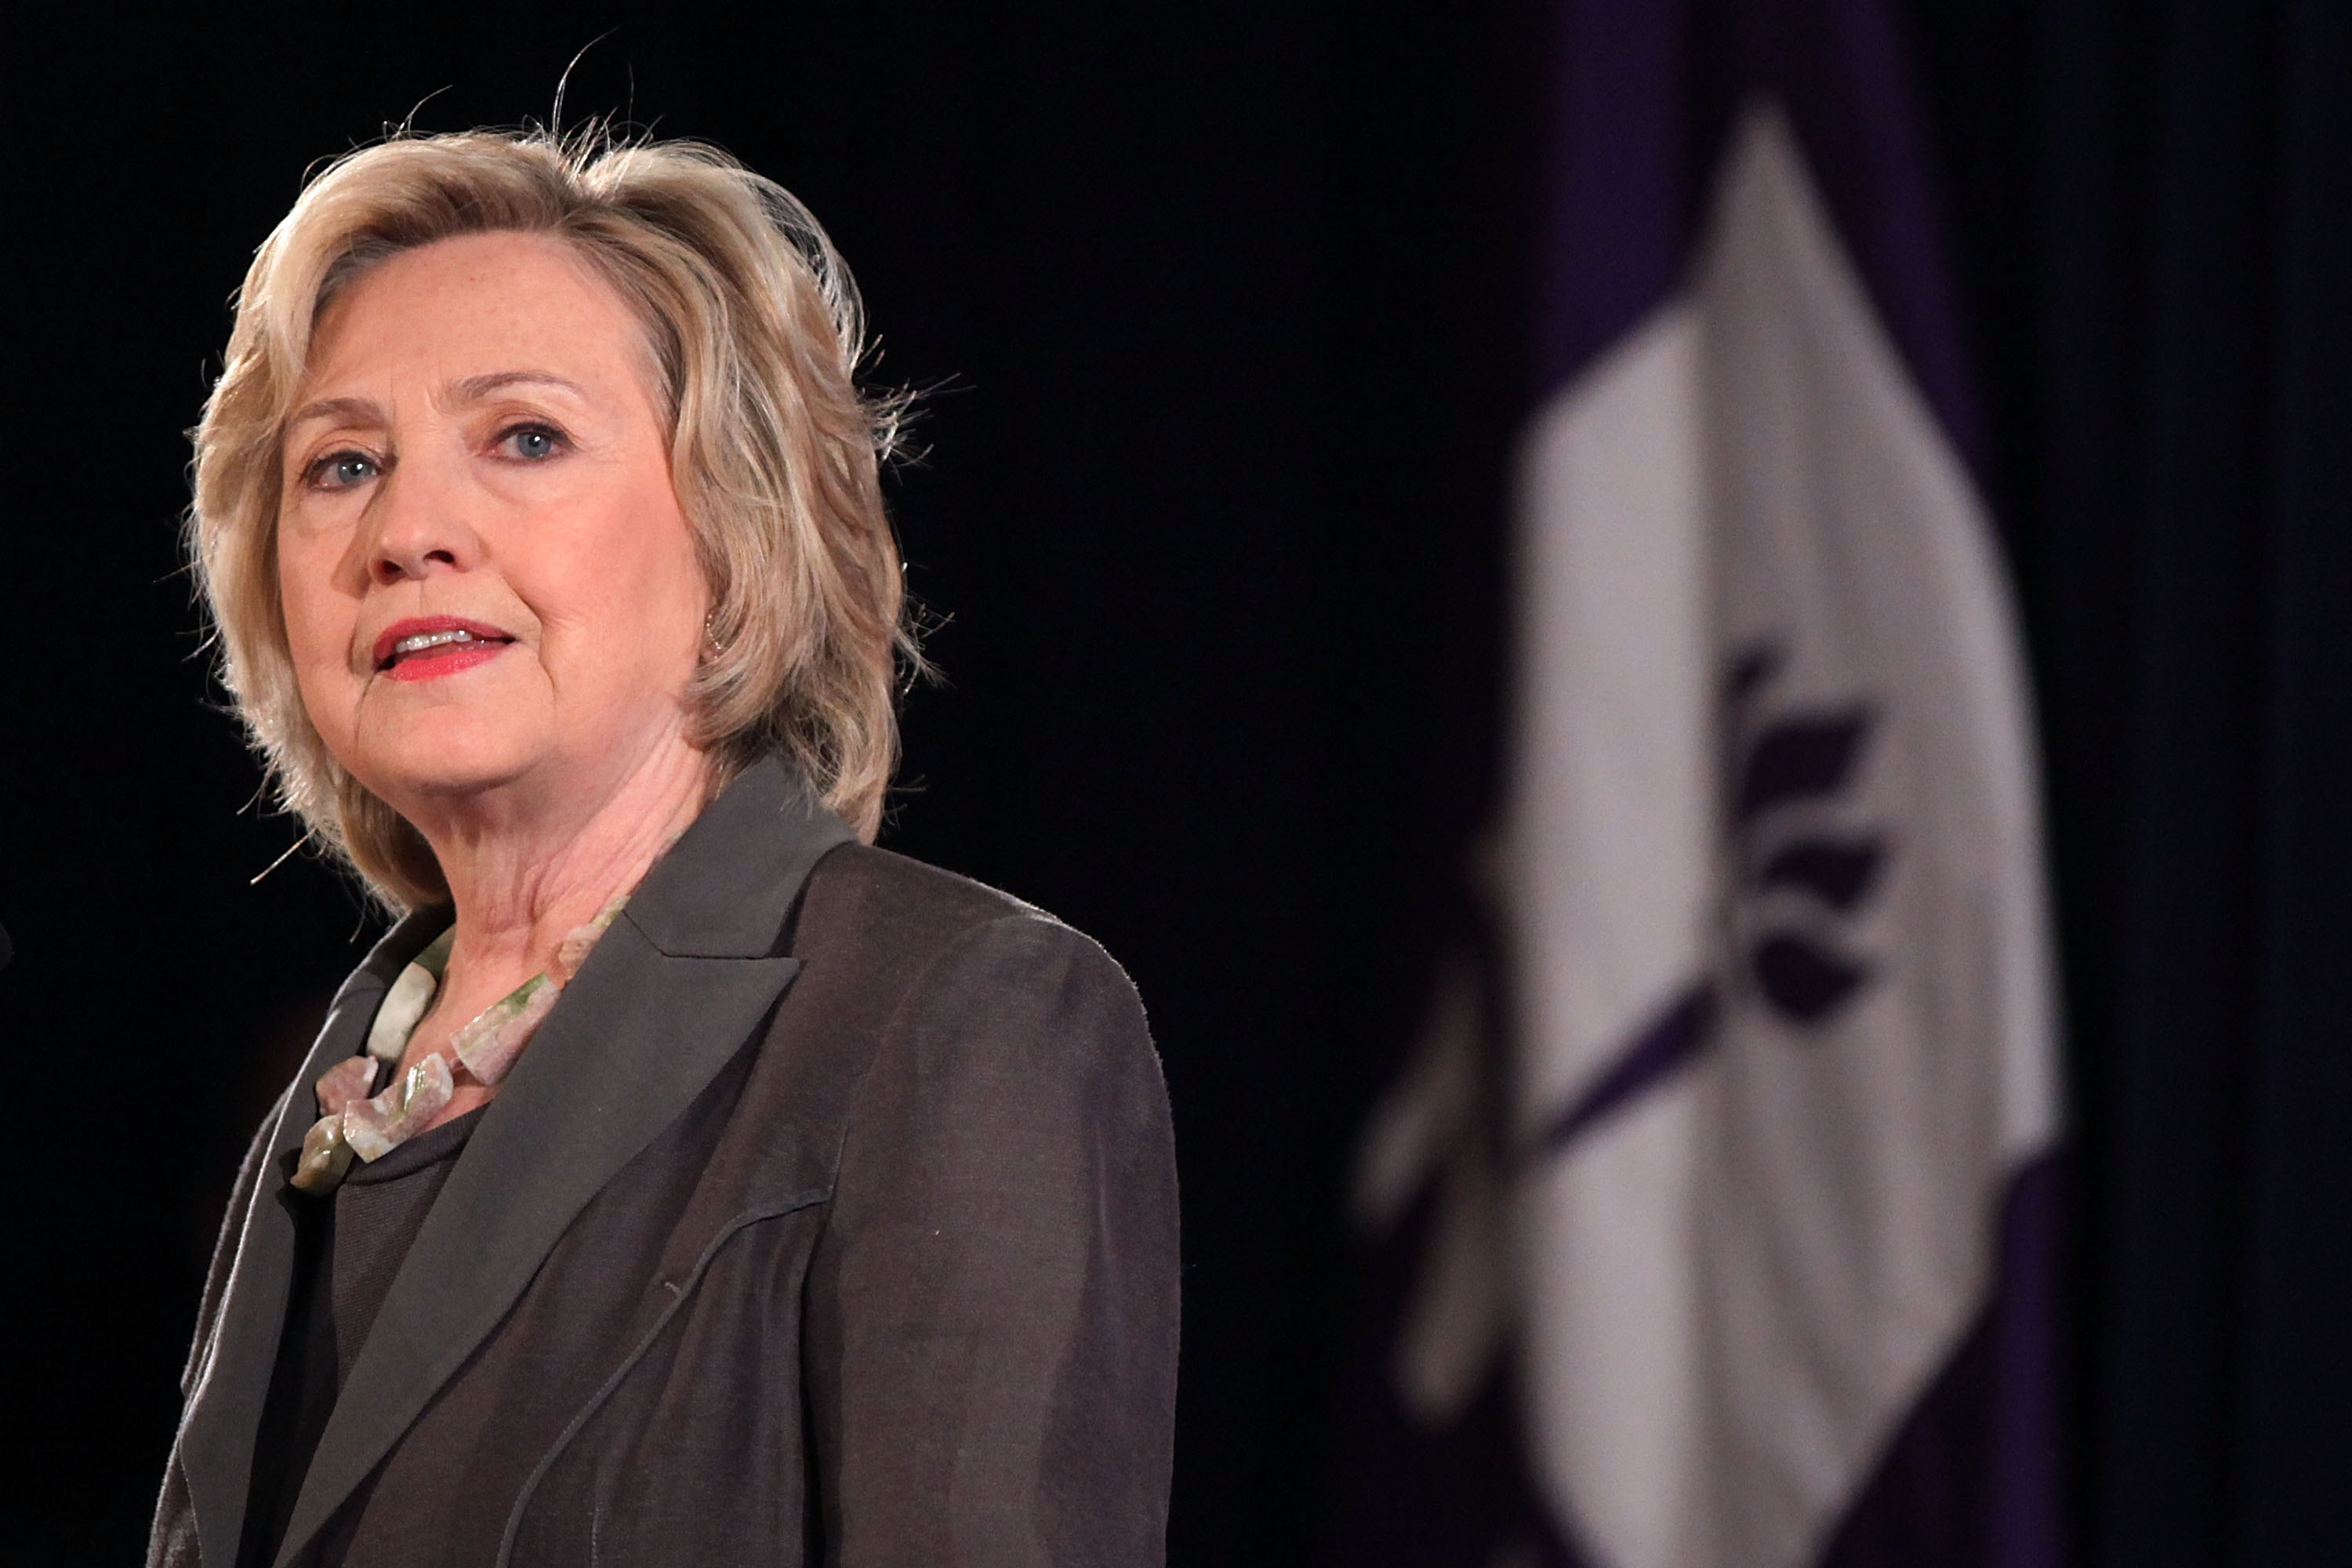 Hillary Clinton owes the public a clear explanation of why she used a private email server while she was secretary of state. (Getty Images)